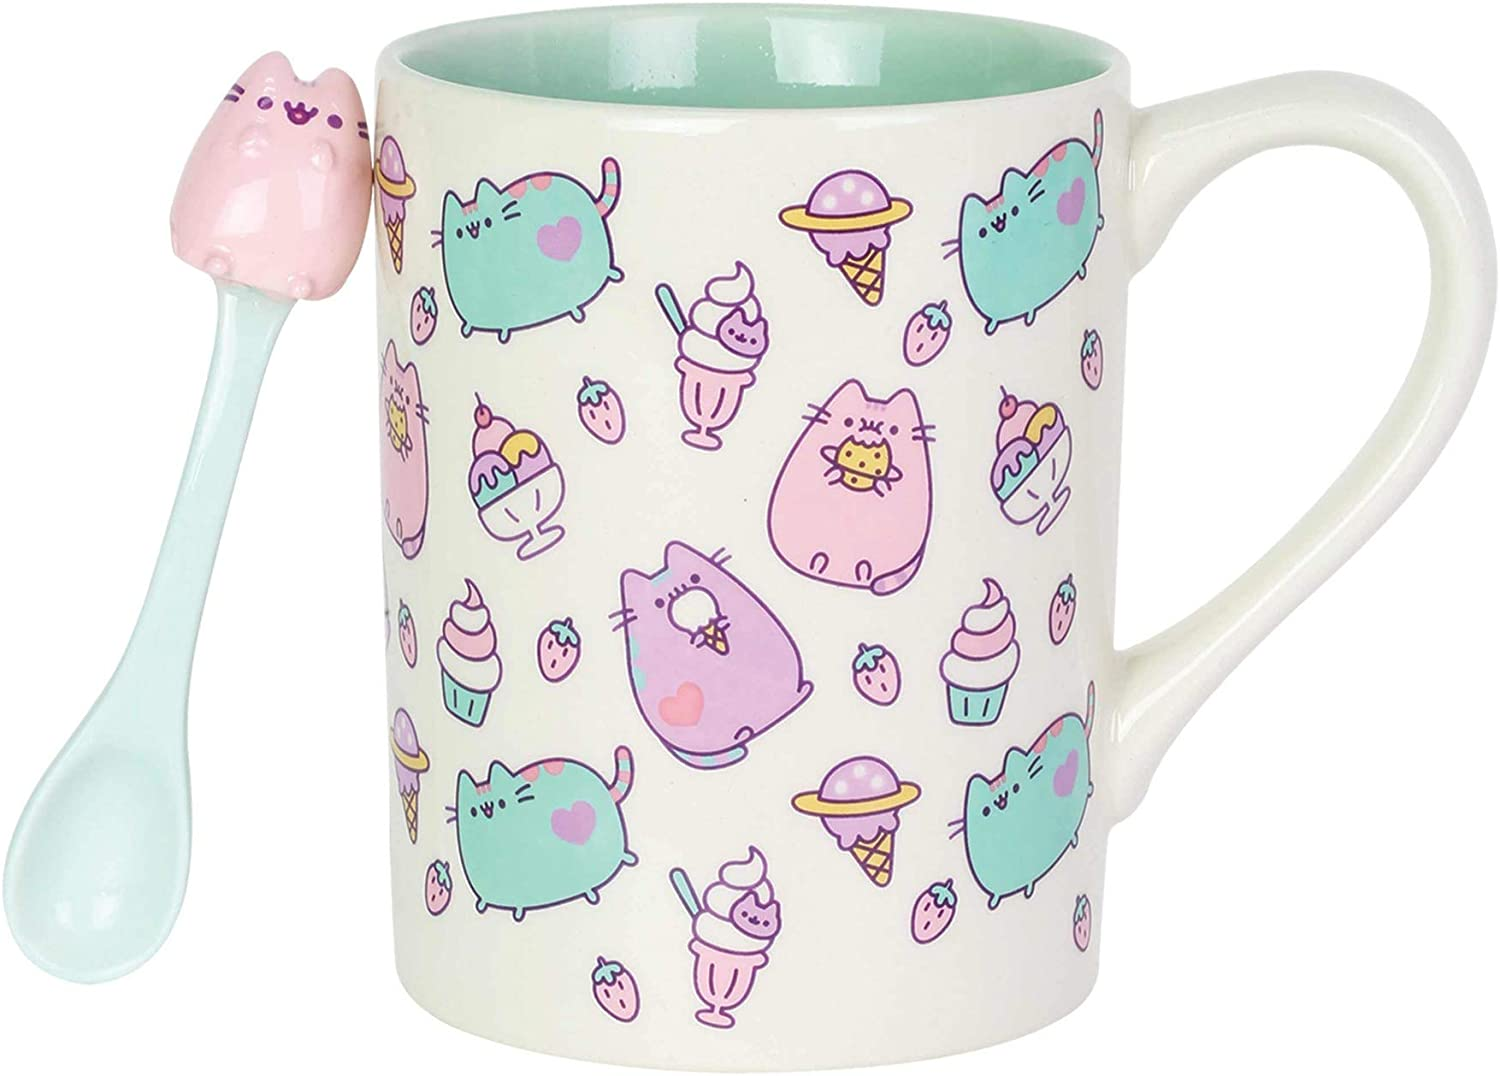 Enesco 6004628 Pusheen by Our Name is Mud Sweets Coffee Mug with Spoon, 16 oz, Multicolor